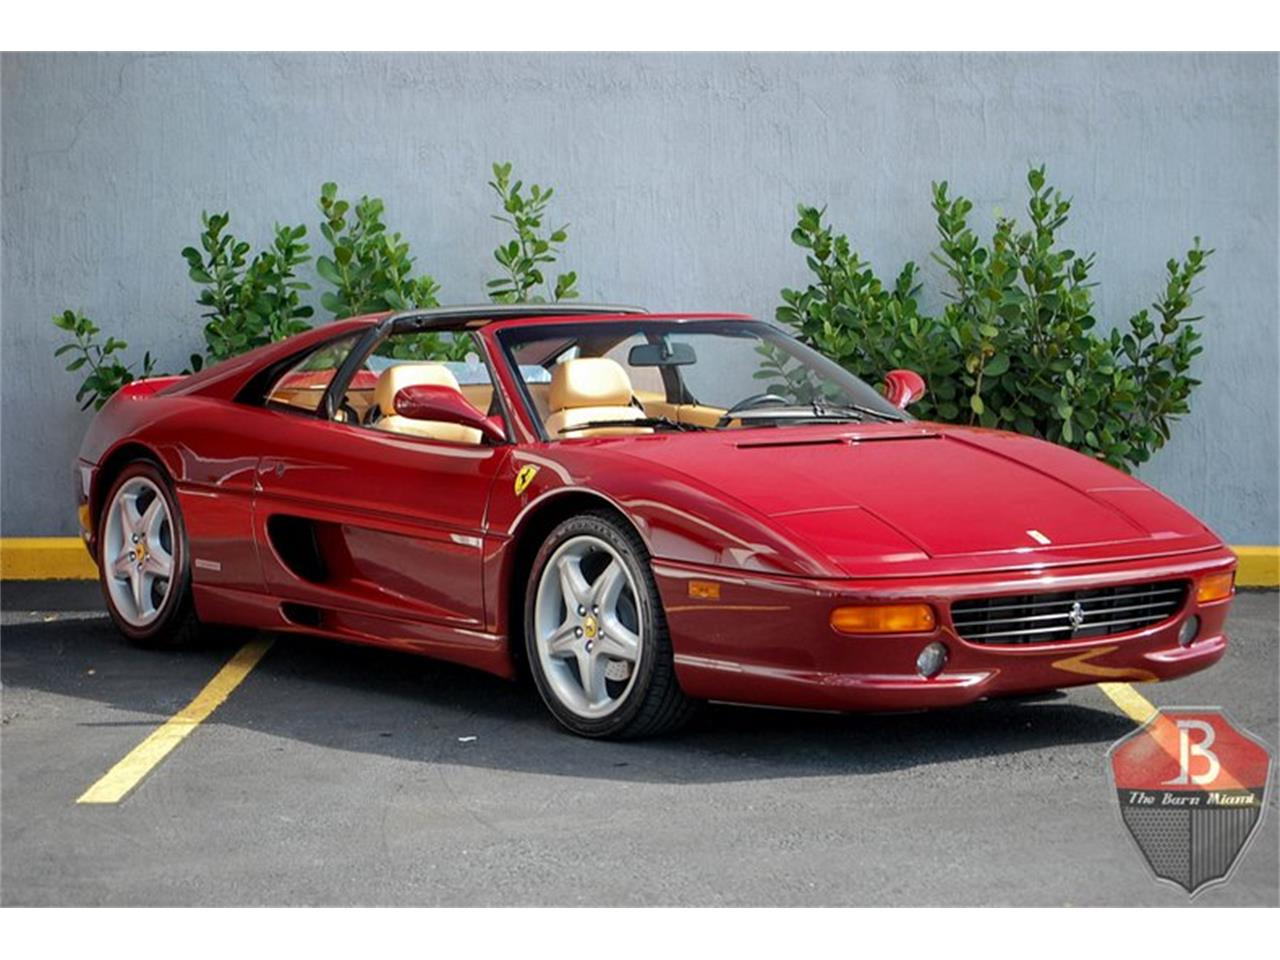 Large Picture of '99 F355 located in Florida Offered by The Barn Miami - N6Y8